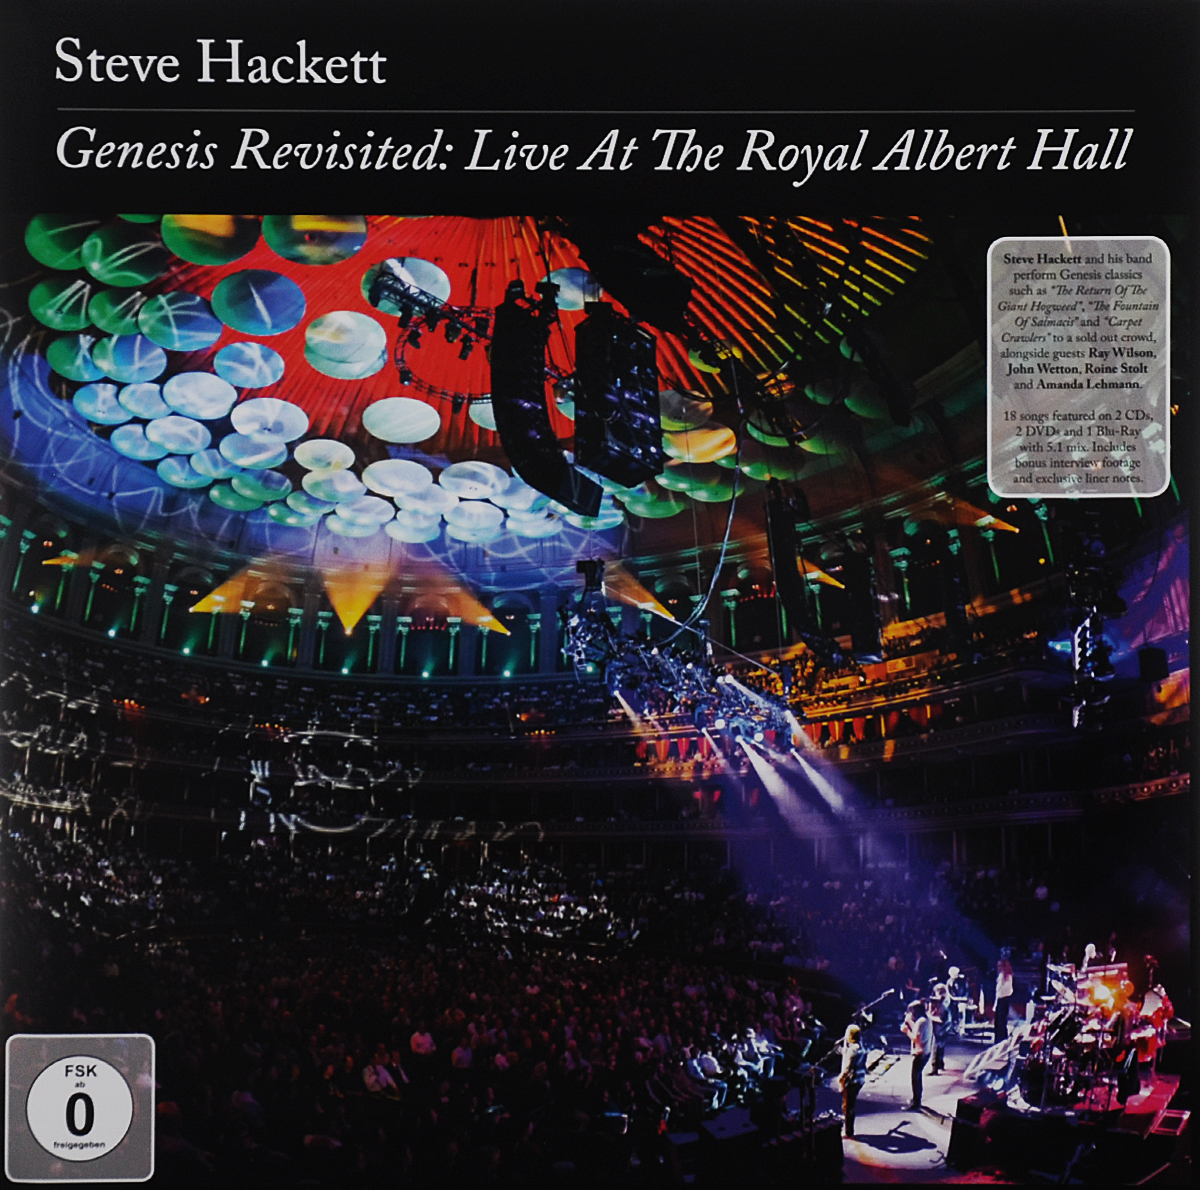 Стив Хэкетт Steve Hackett. Genesis Revisited. Live At The Royal Albert Hall (2 CD + 2 DVD + Blu-ray) yes yes in the present live from lyon 2 cd dvd